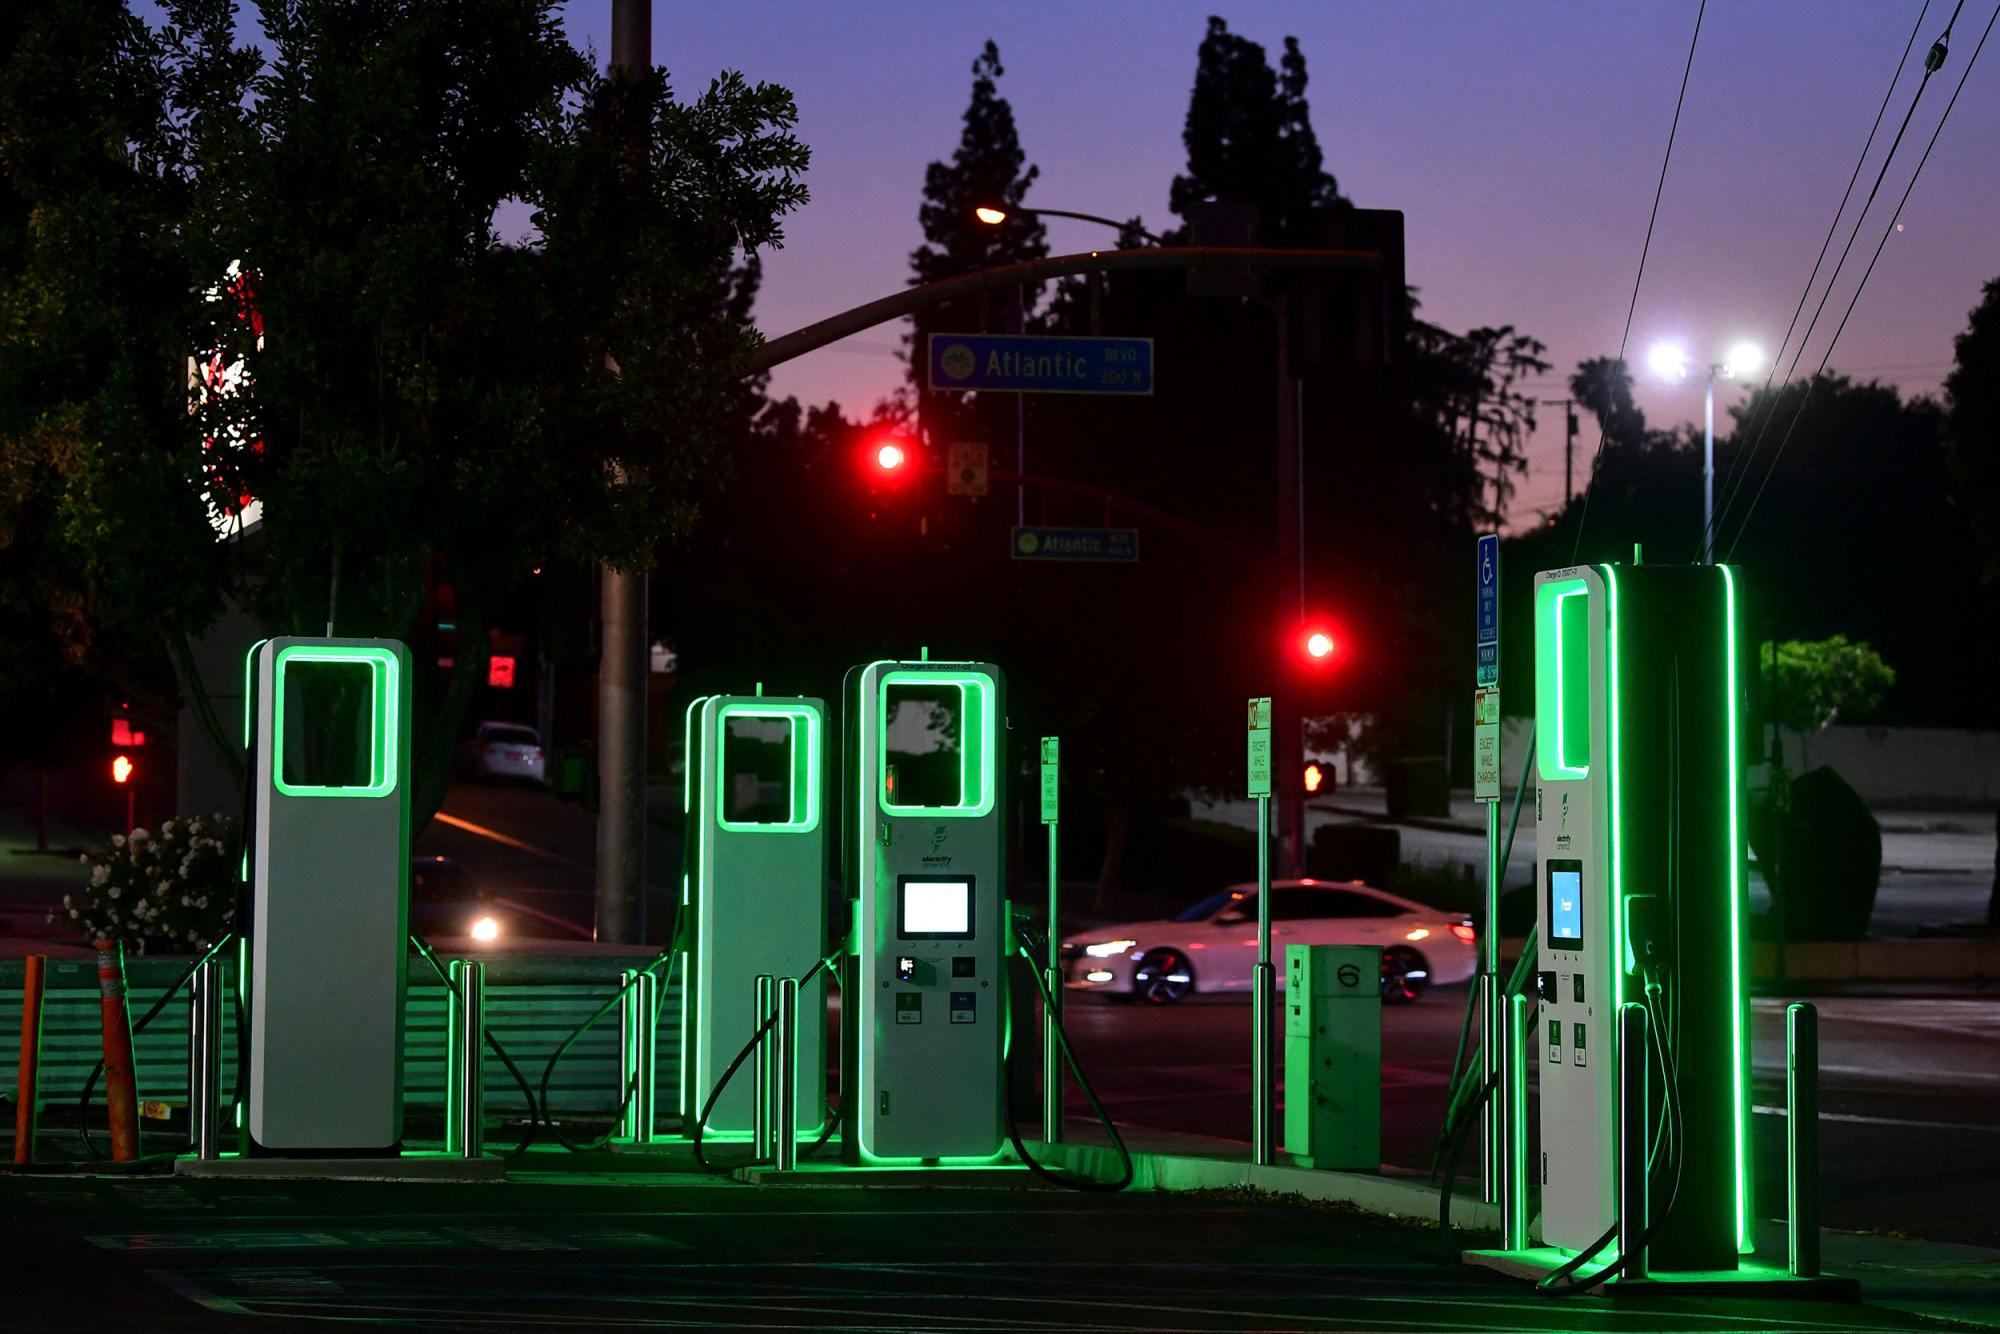 An electric vehicle charging station lights up green in the parking lot of a Ralph's supermarket in Monterey Park, Calif.